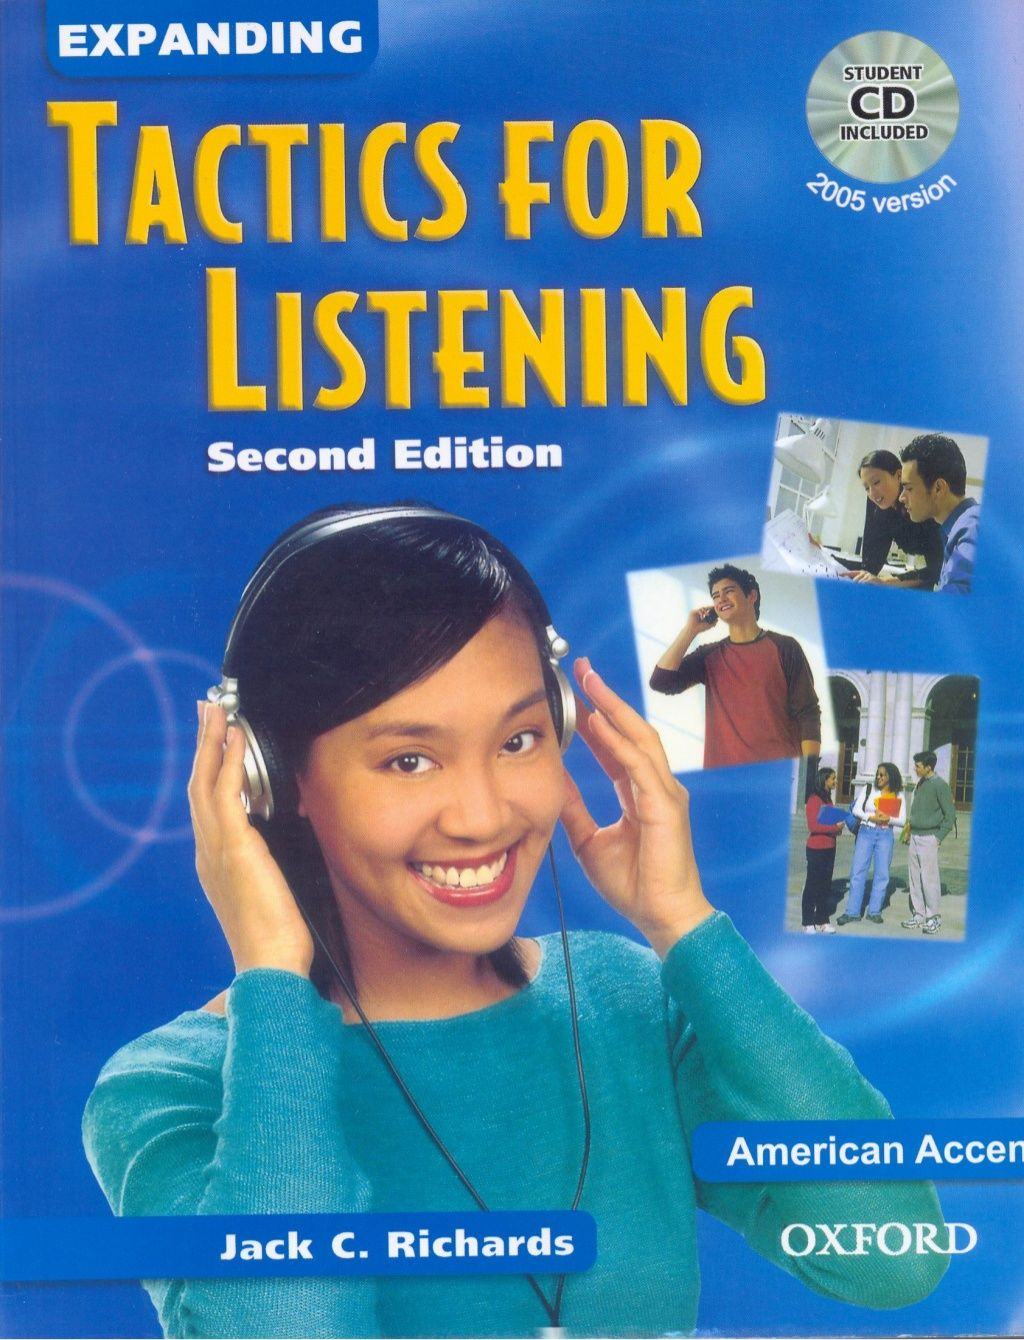 Libros Listening Ingles Tactics For Listening Expanding By Jbhong81 Via Slideshare